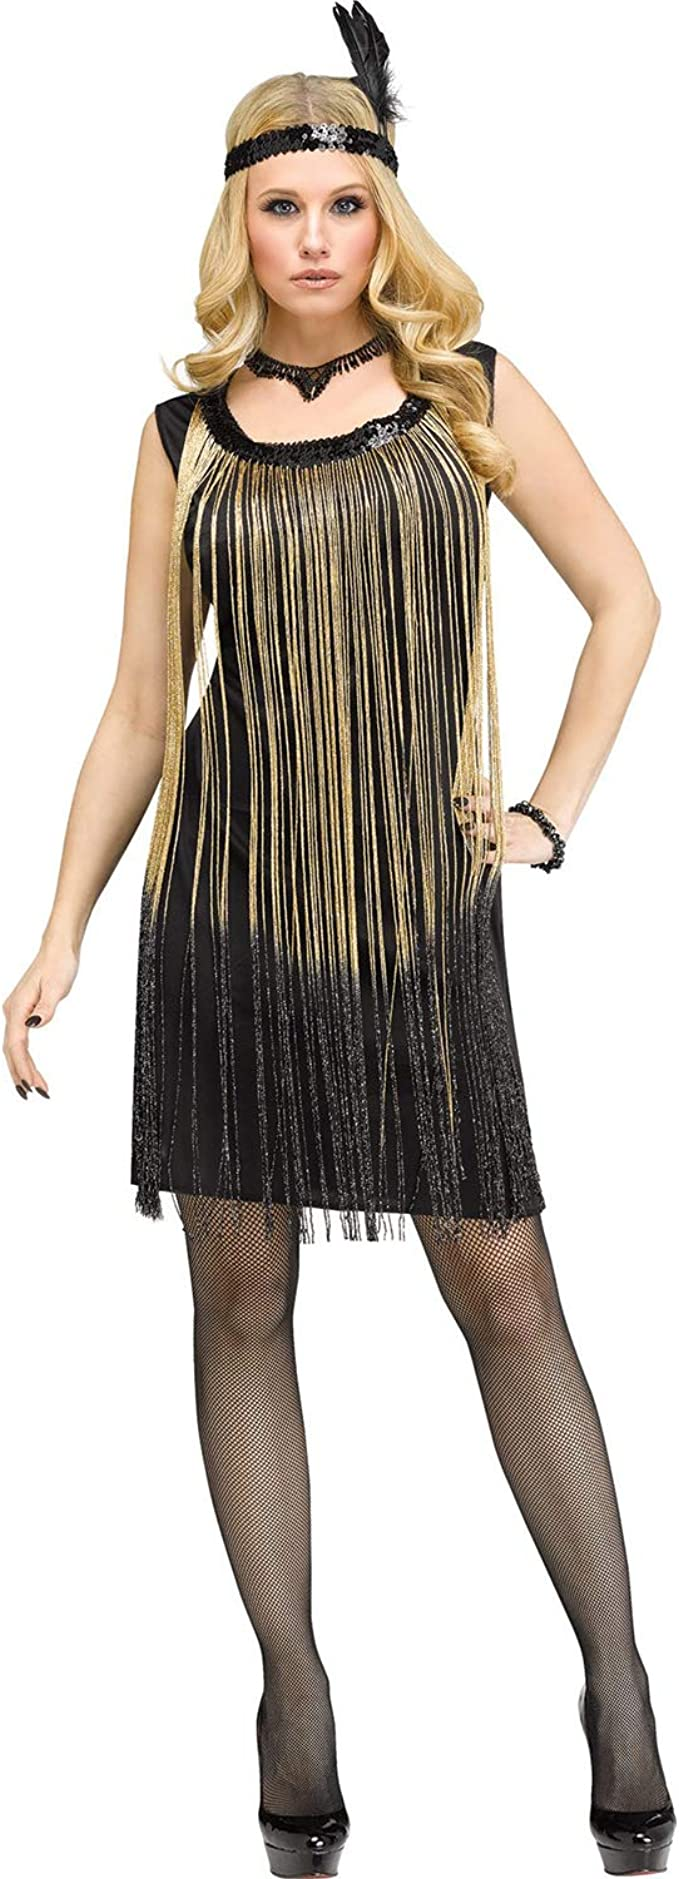 Roaring 20s Costumes- Flapper Costumes, Gangster Costumes Fun World Womens Flirty Flapper Gold 1920s Halloween Costume $34.95 AT vintagedancer.com